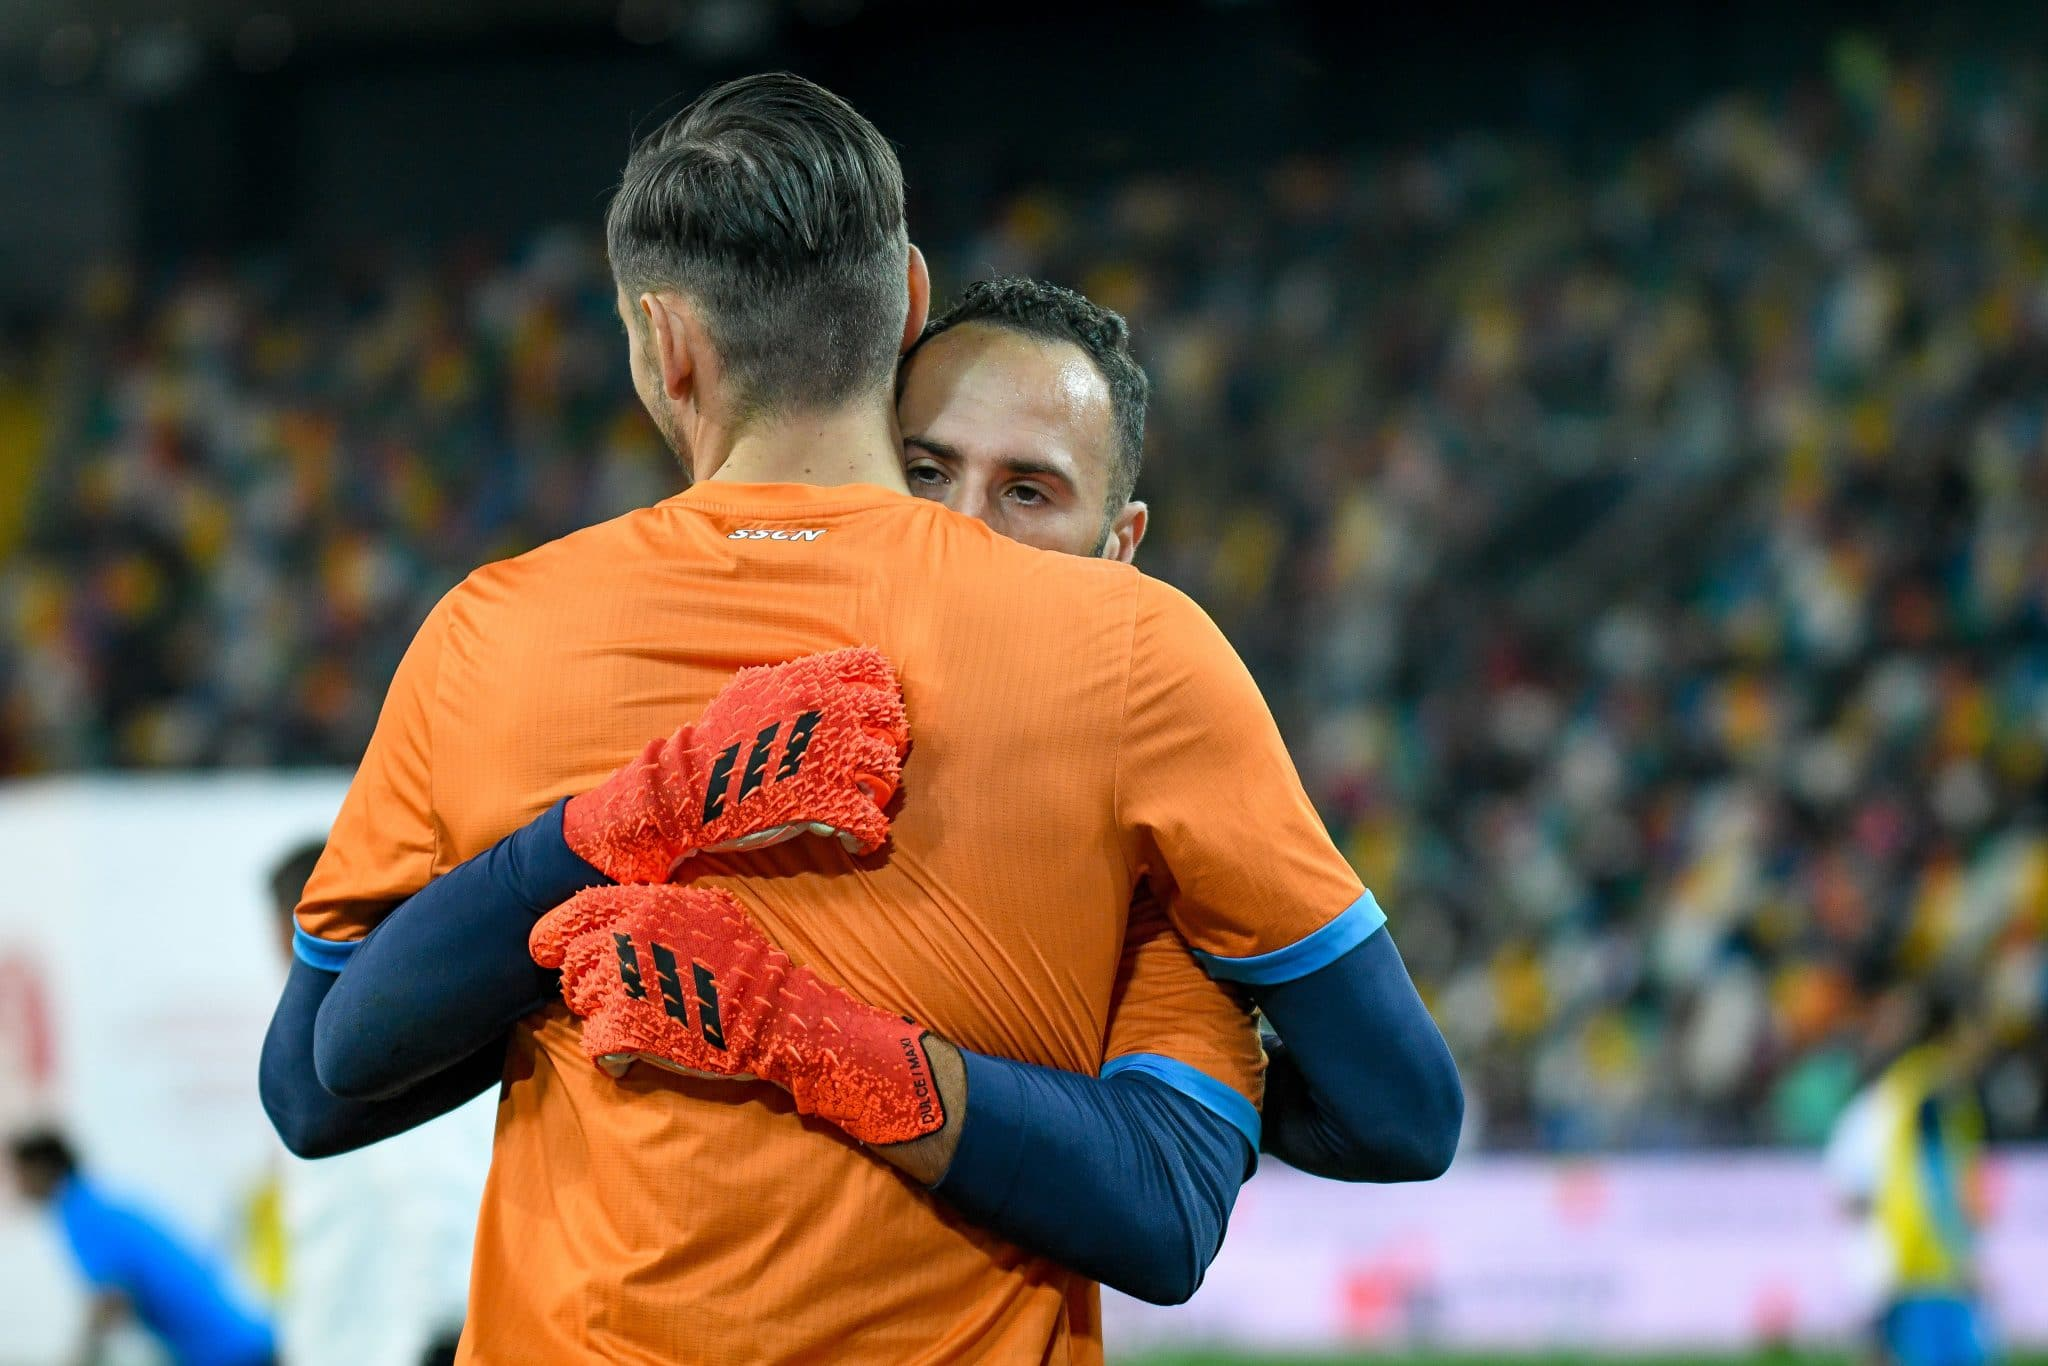 Alex Meret (Napoli) hugs David Ospina (Napoli) during the Italian football Serie A match Udinese Calcio vs SSC Napoli on September 20, 2021 at the Friuli - Dacia Arena stadium in Udine, Italy (Photo by Ettore Griffoni/LiveMedia/NurPhoto via Getty Images)